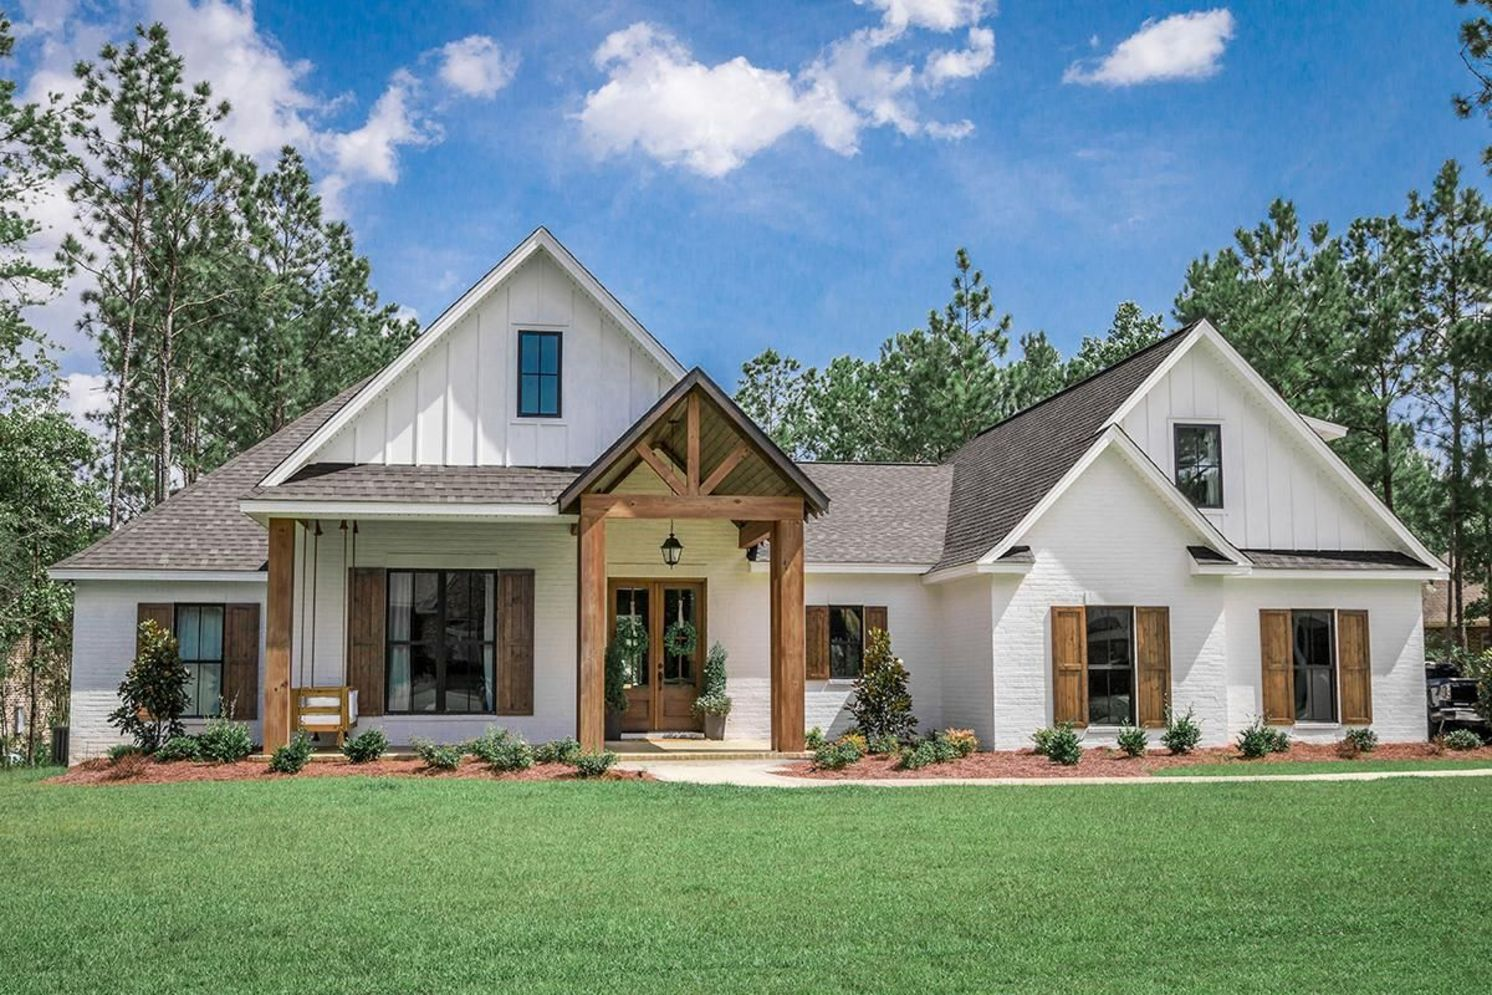 Countryside house with modern Farmhouse exterior design bringing up the traditional style in new classy look Image 23